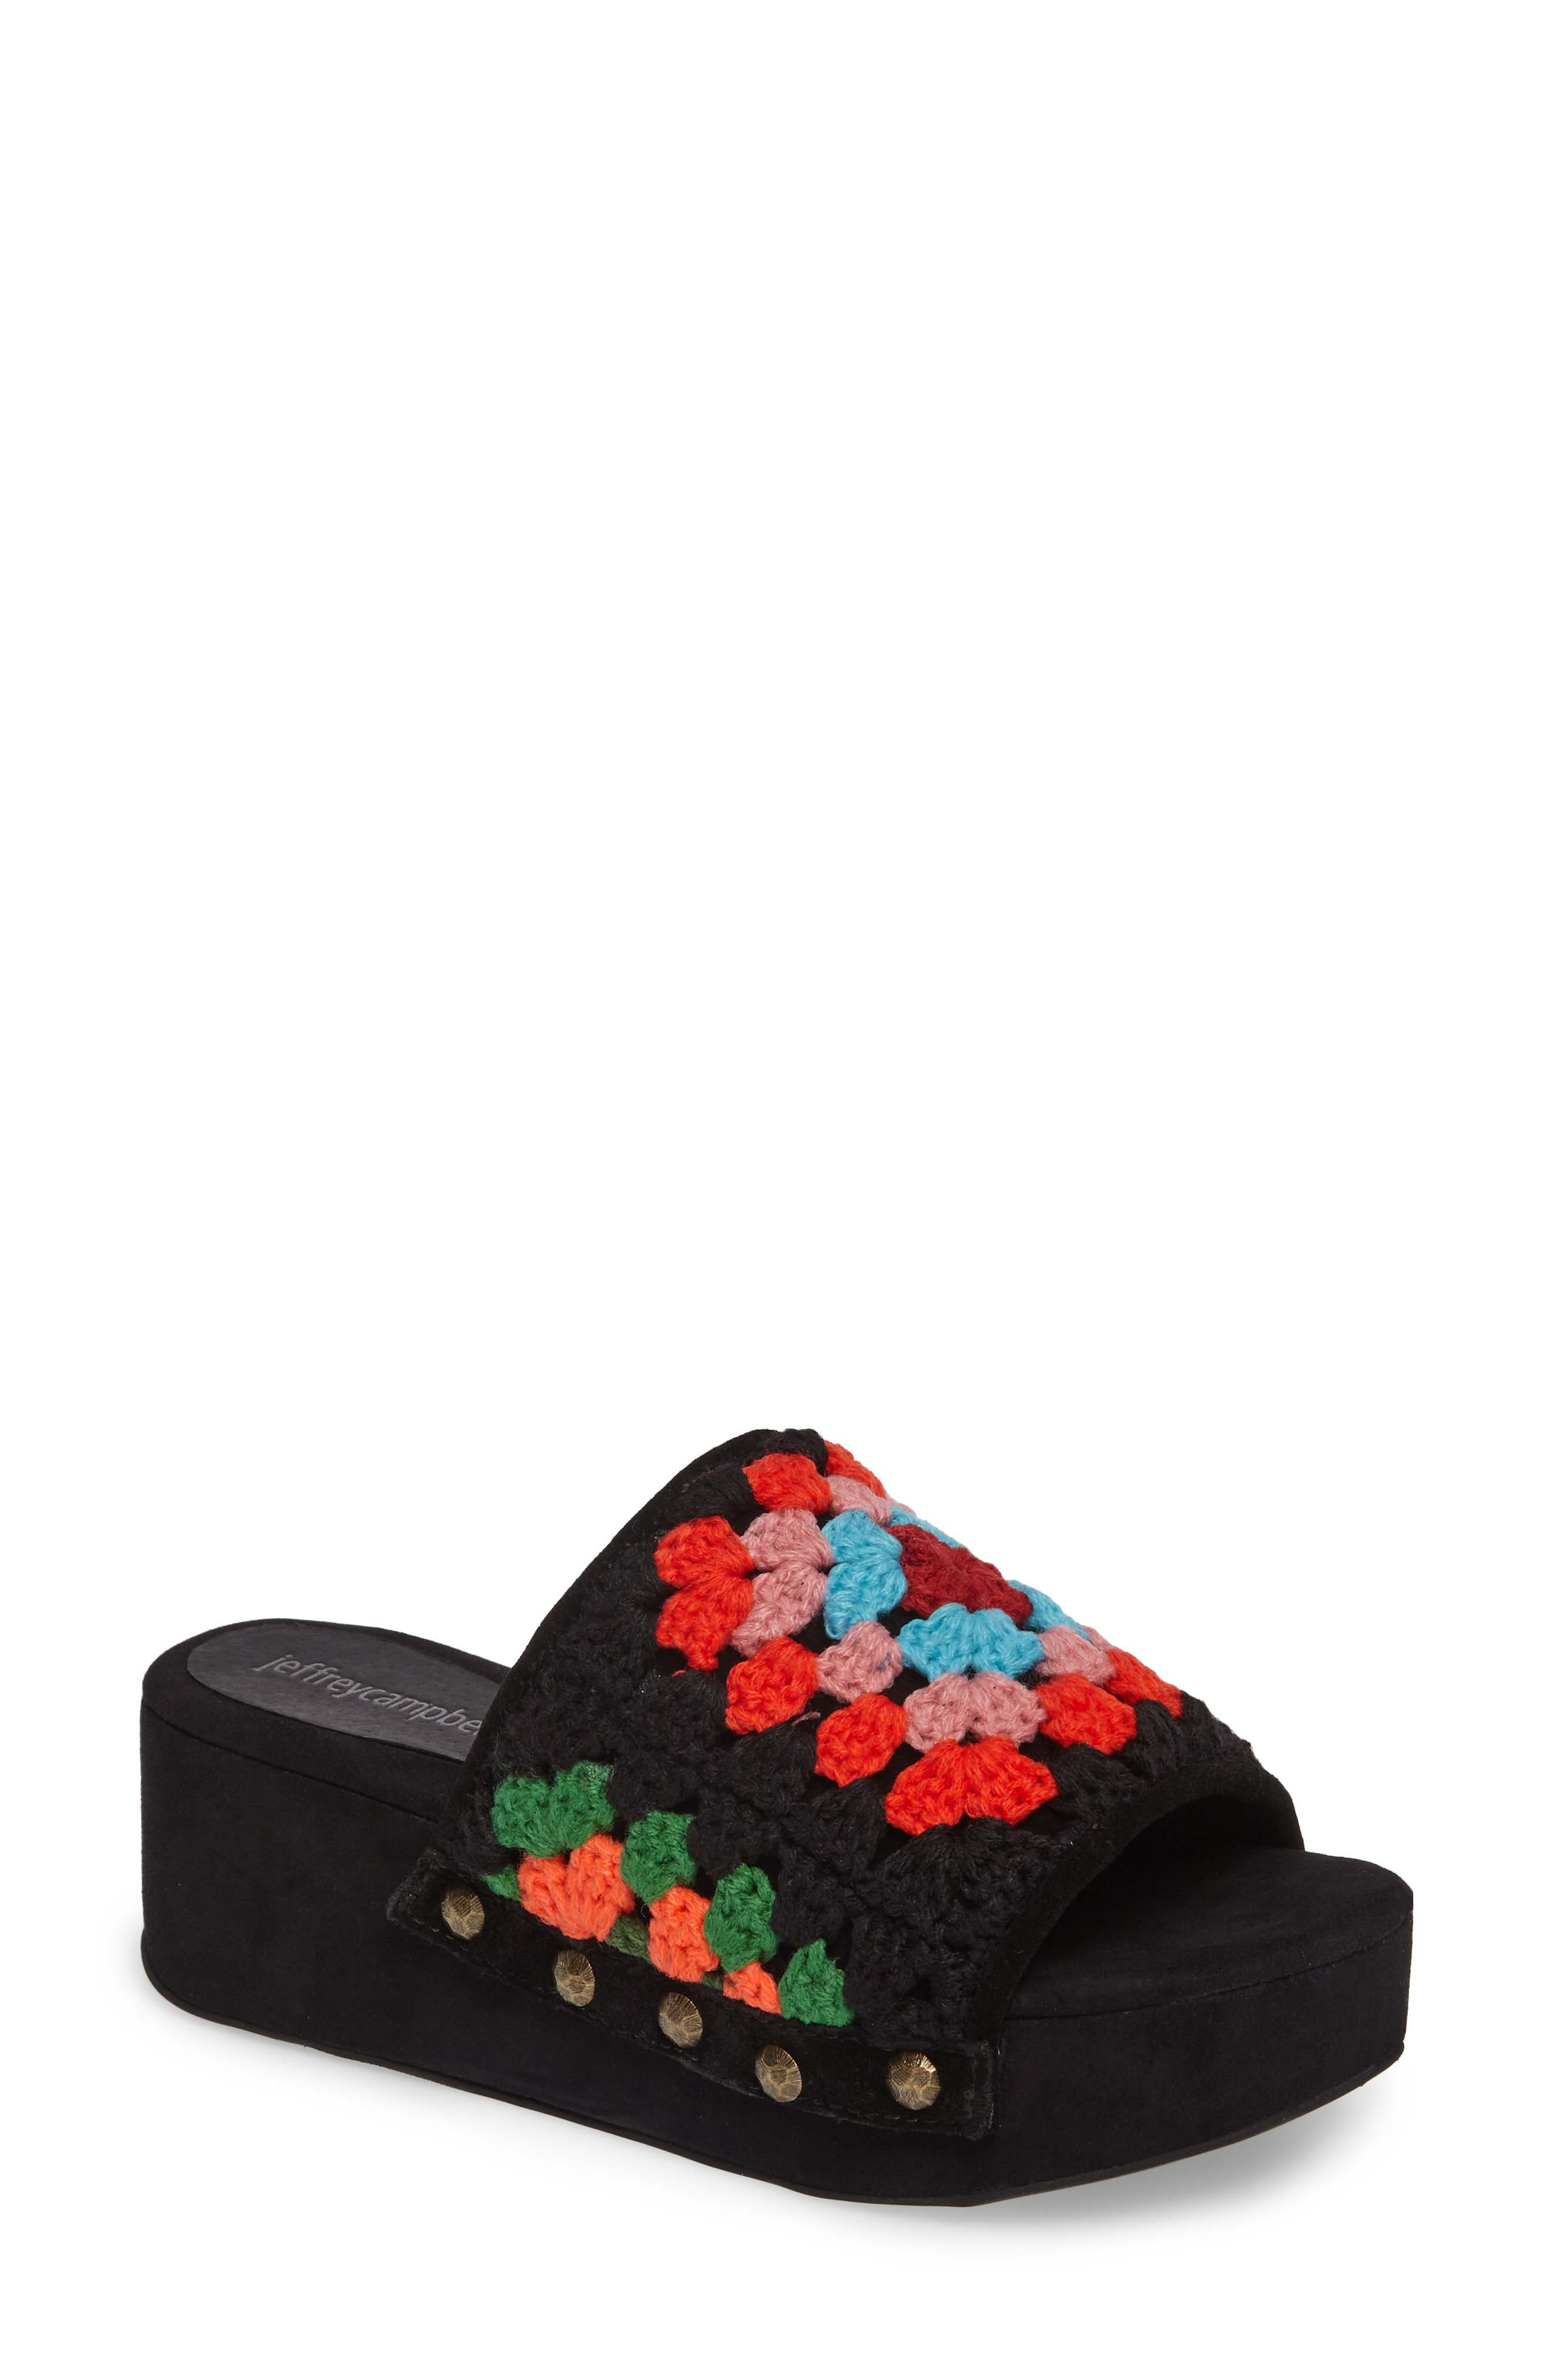 Nonna Crocheted Platform Slide Sandal,                         Main,                         color, Black Suede Multi